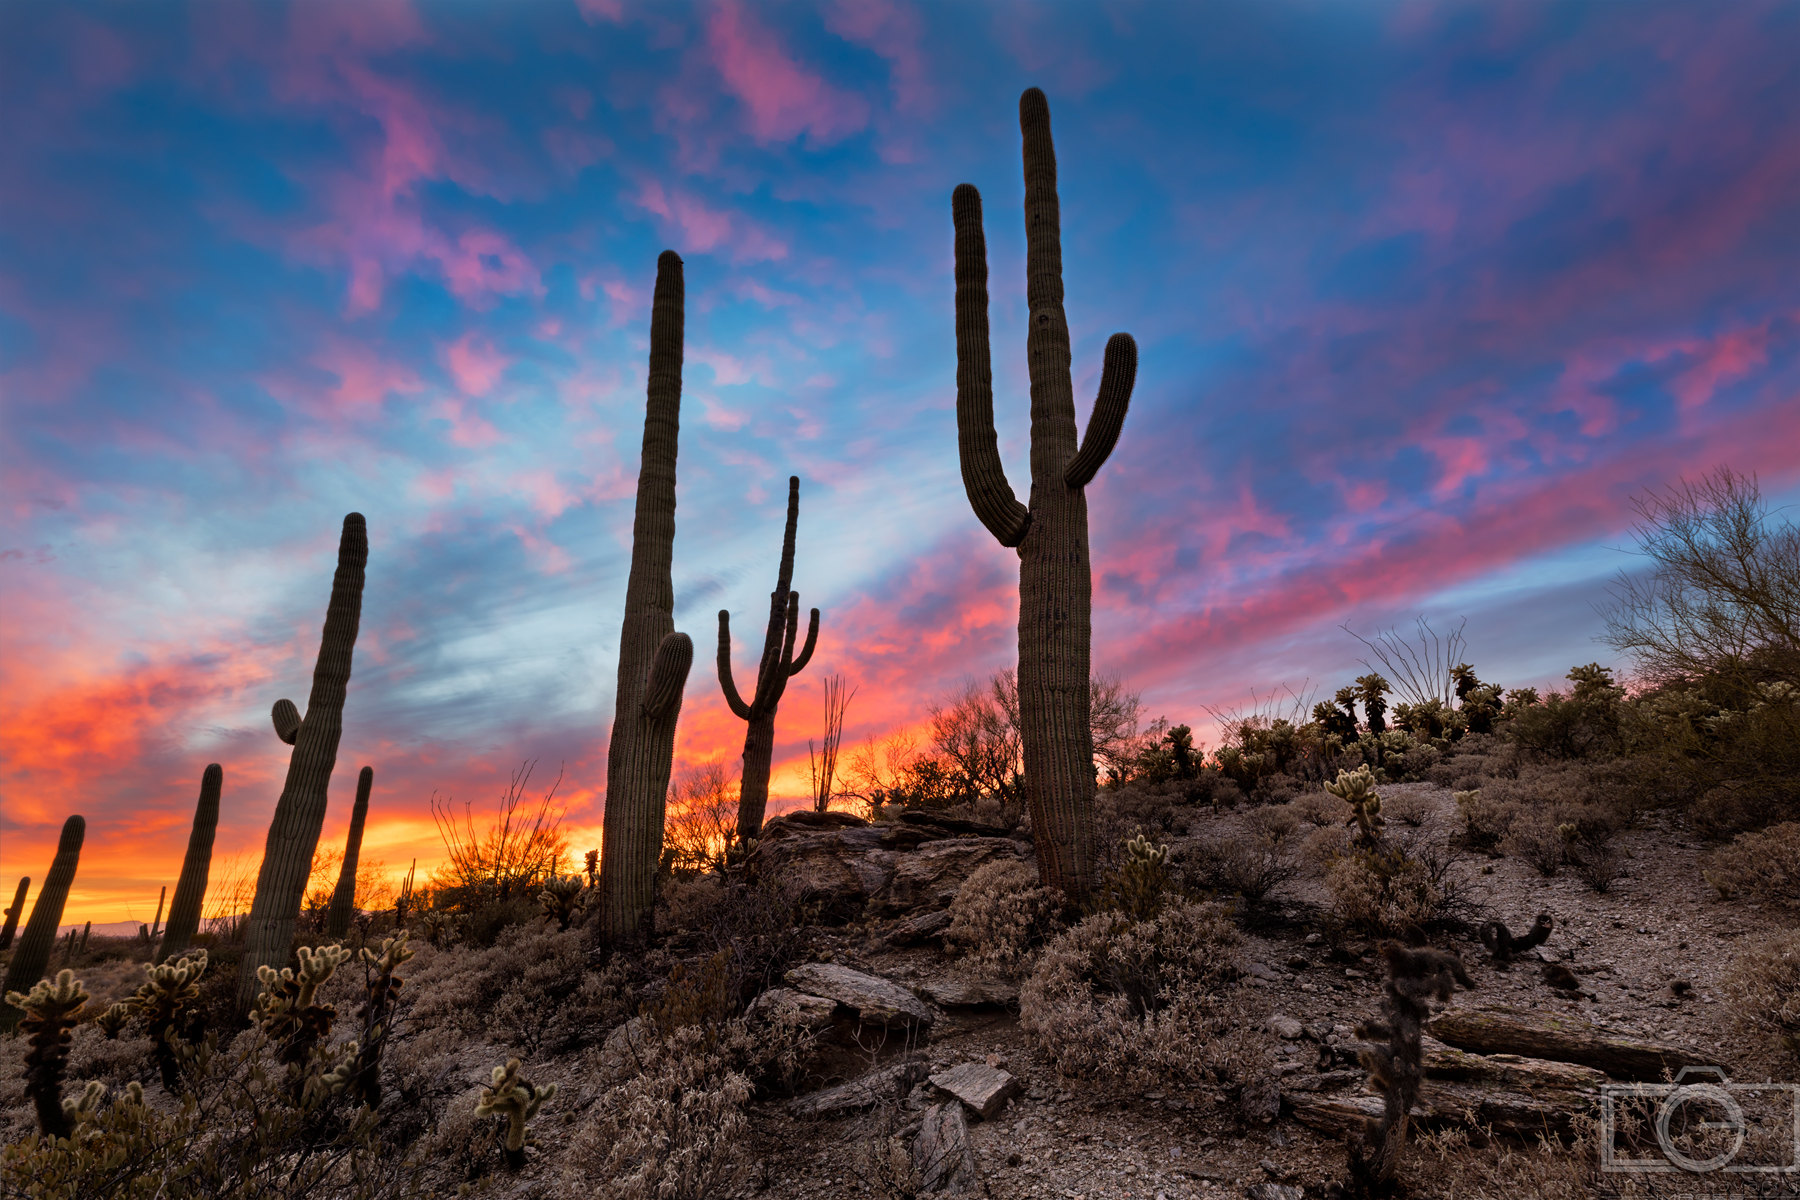 Saguaro cactus Sunset mountains